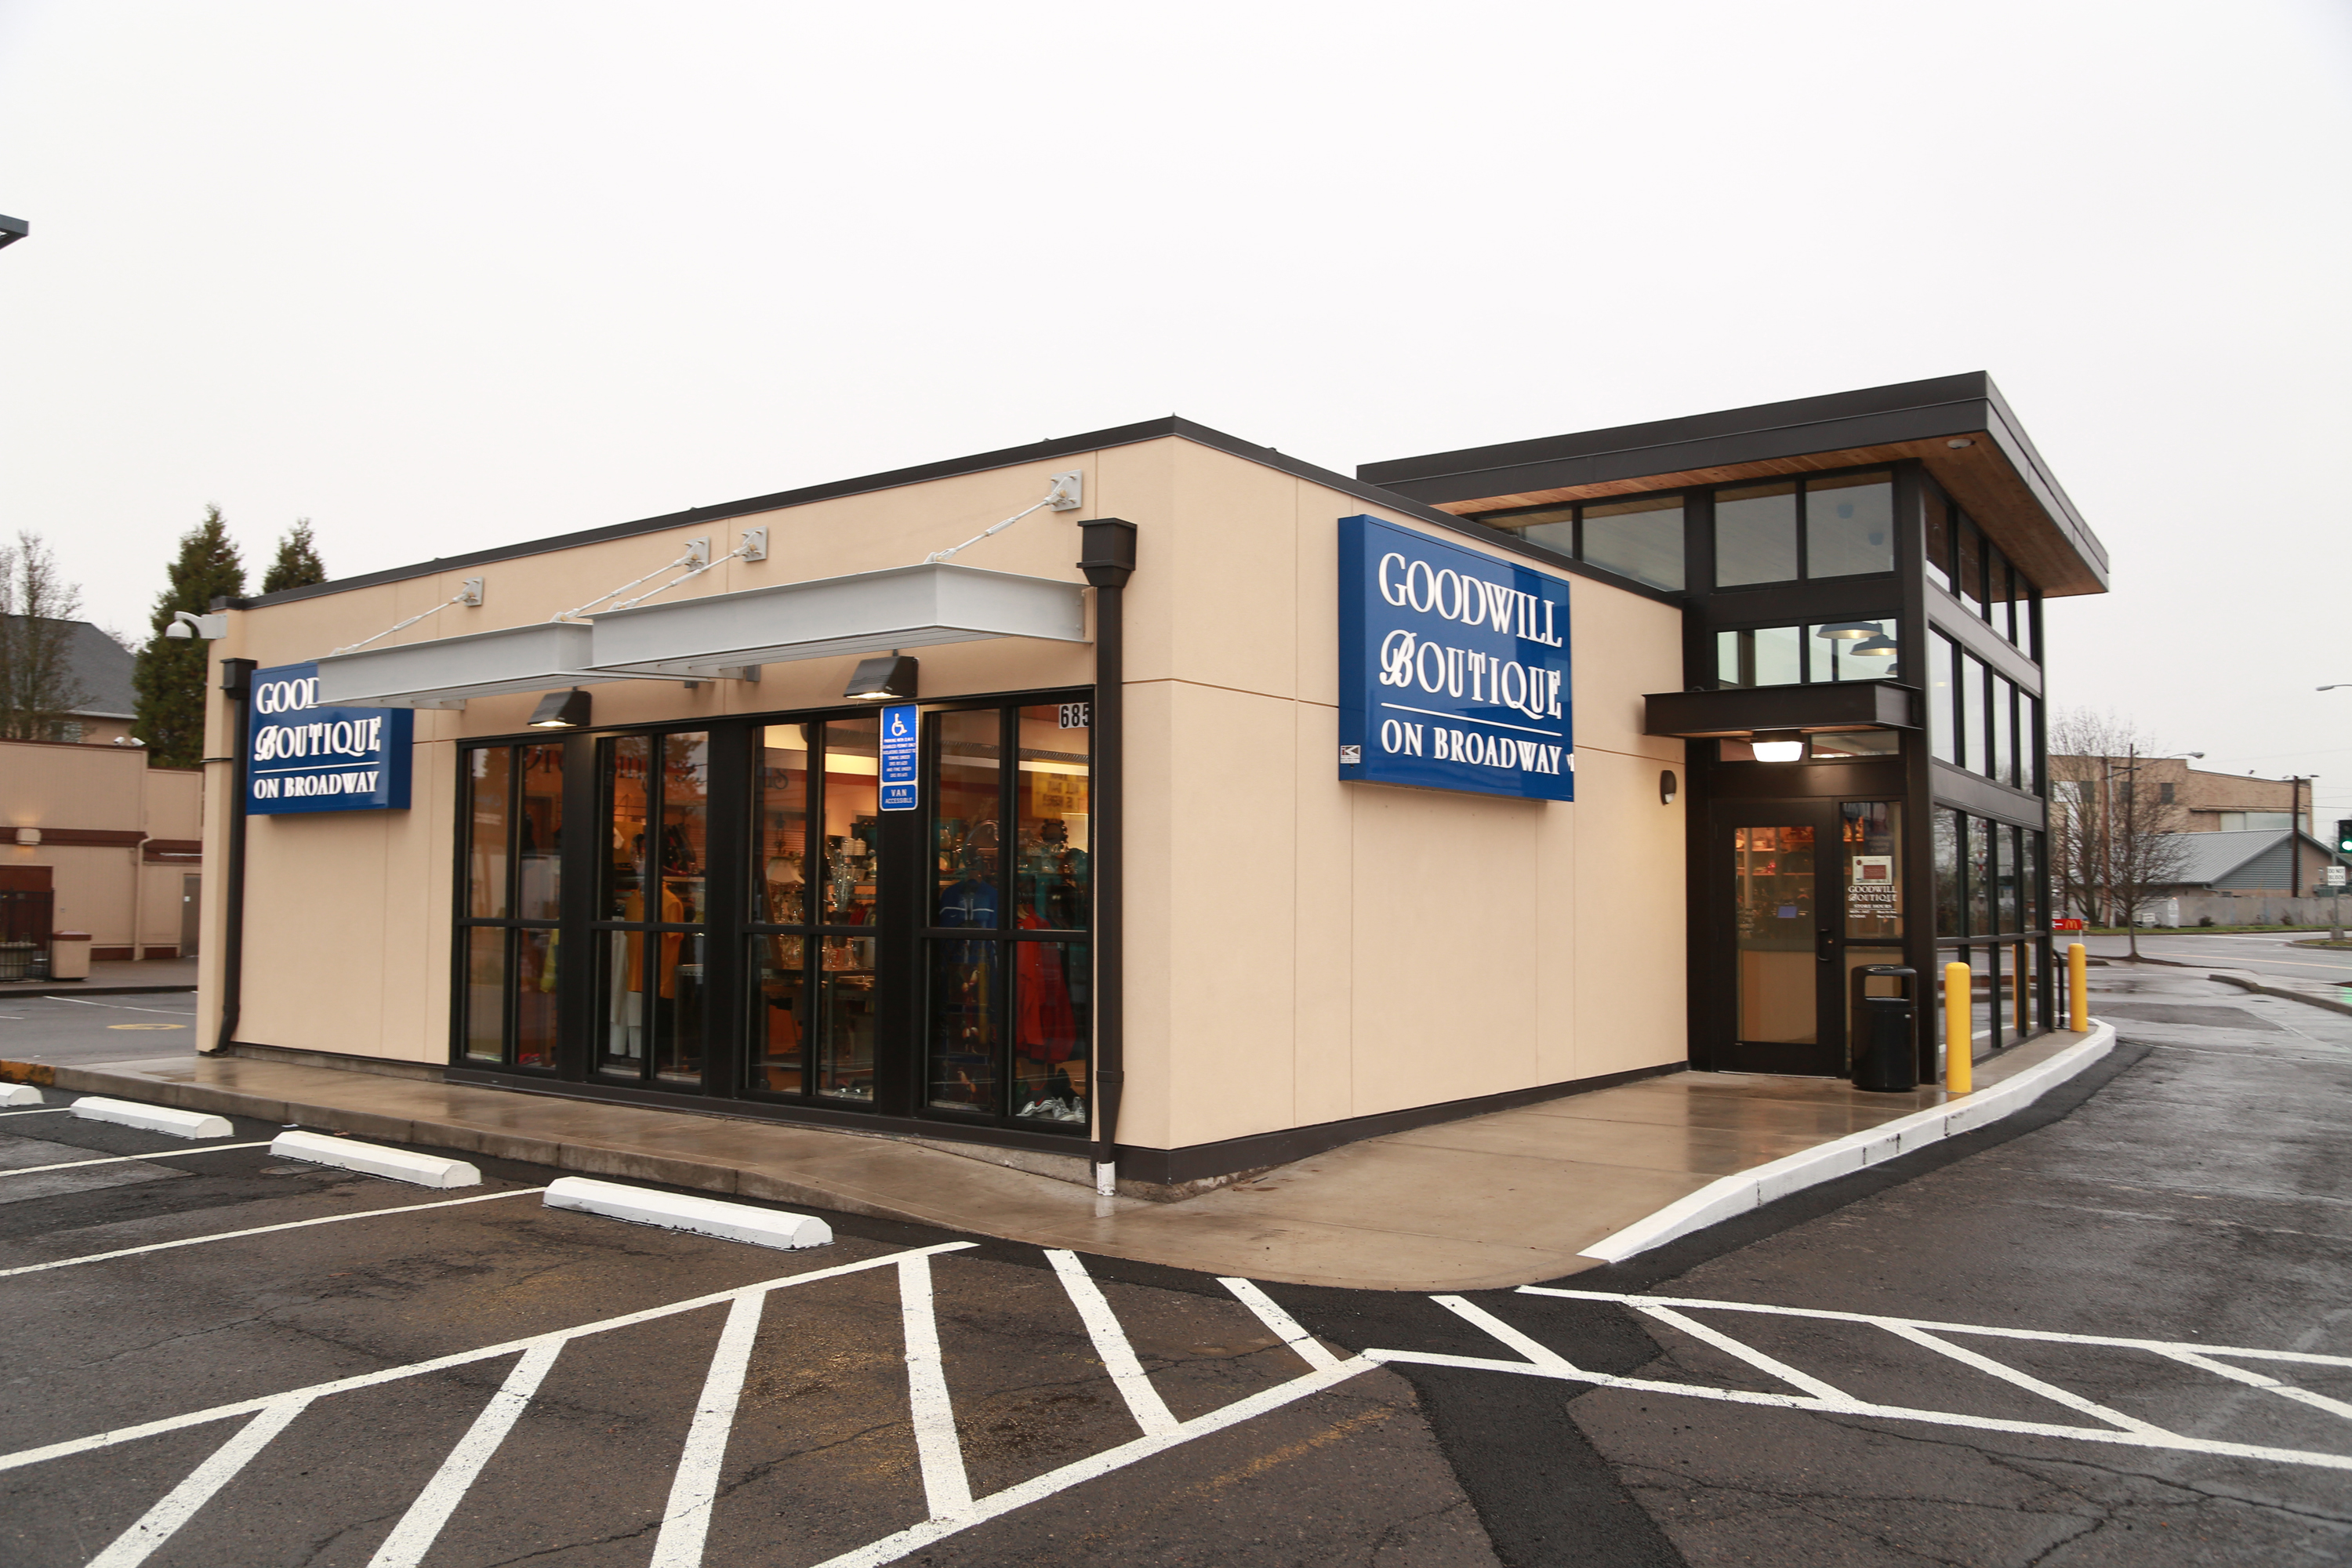 Goodwill Boutique on Broadway Retail Store and Donation Center | 685 E Broadway, Eugene, OR, 97401 | +1 (541) 344-1029